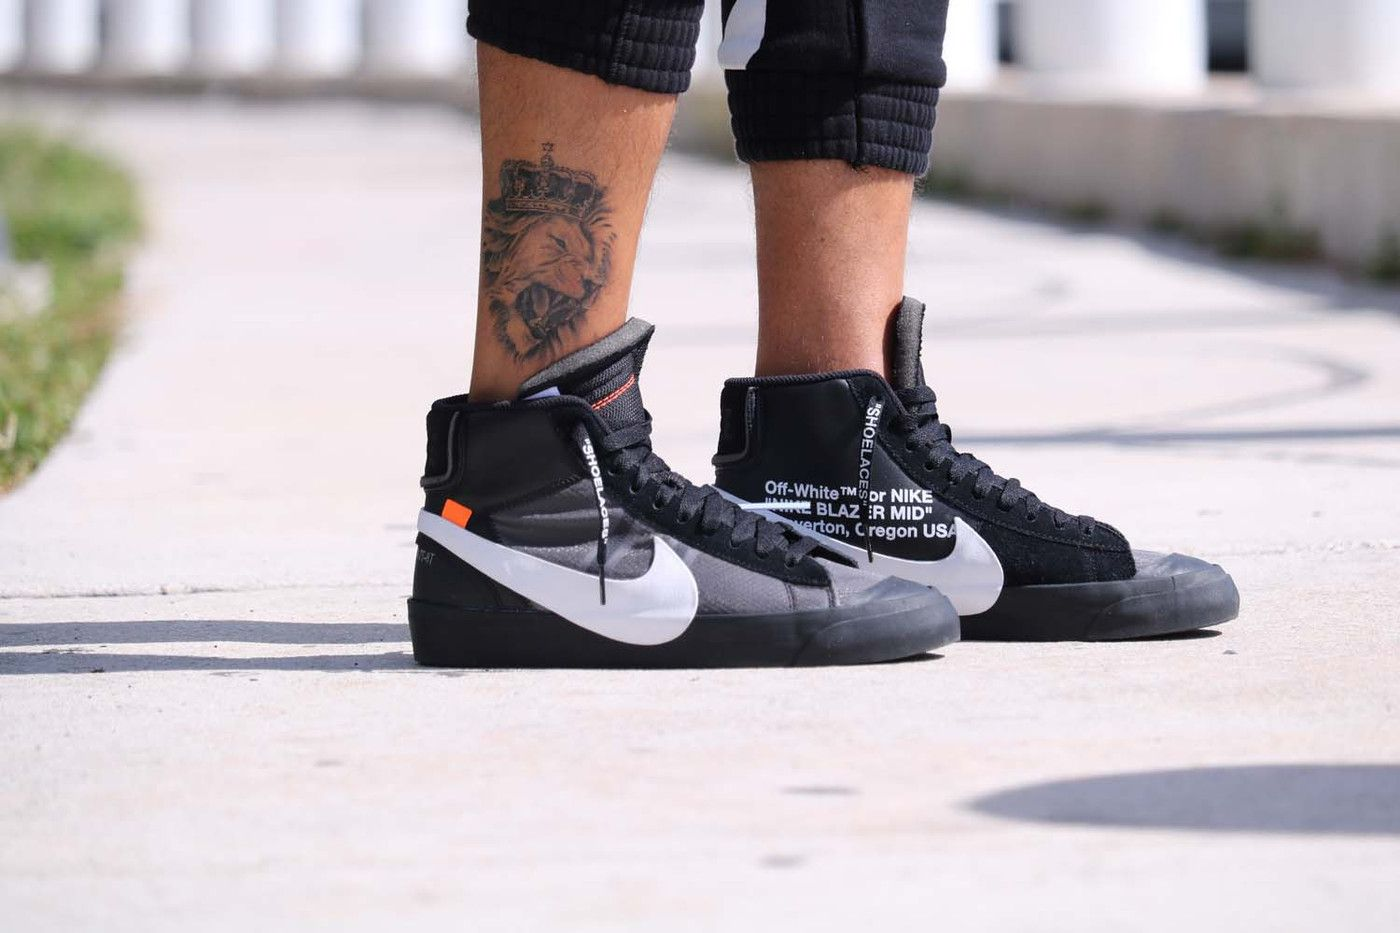 eaa53a6bb04 Off-White™ x Nike Blazer Spooky Pack Black On Feet Virgil Abloh Grim Reaper All  Hallows Eve Orange First Look Closer Release Information Details